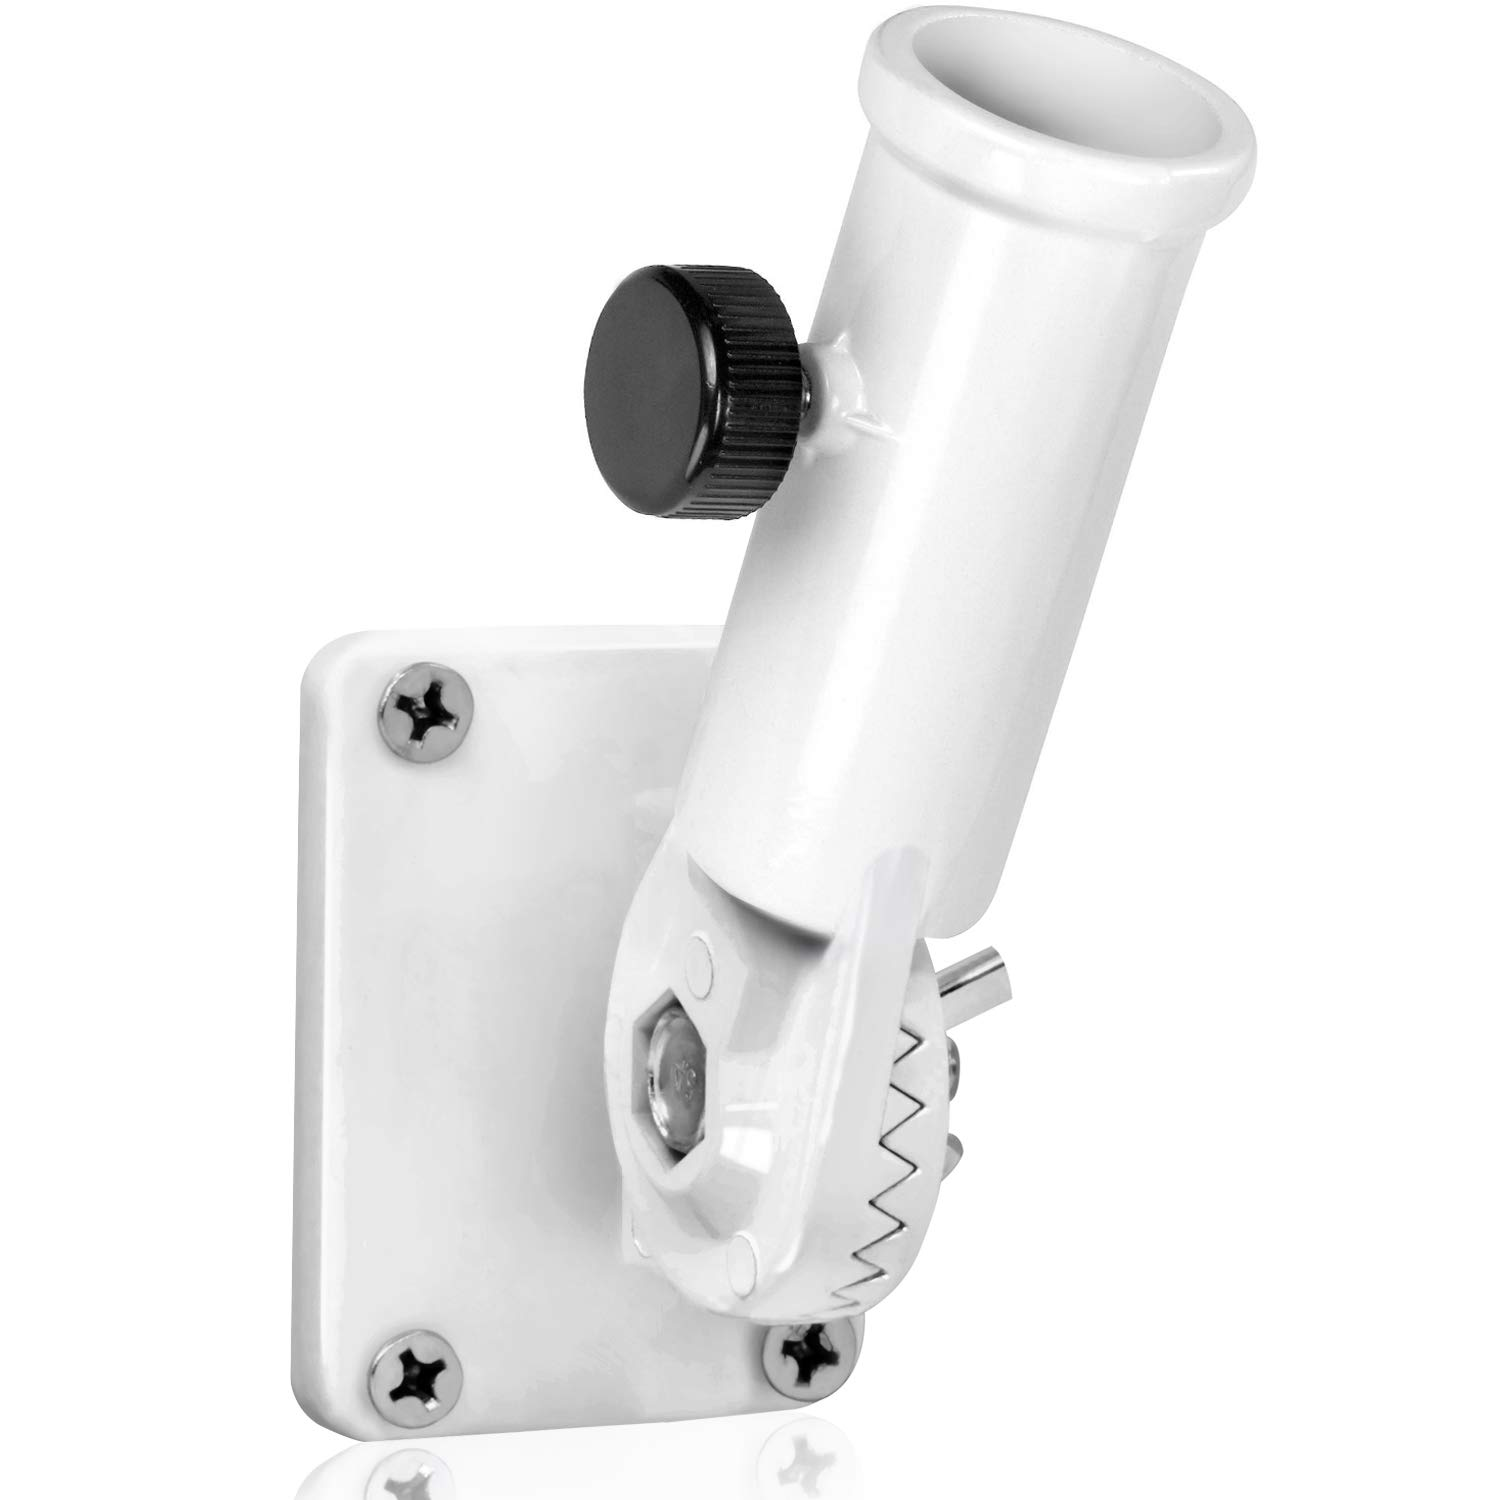 Anley Multi-Position Flag Pole Mounting Bracket with Hardwares - Made of Aluminum - Strong and Rust Free - 1'' Diameter